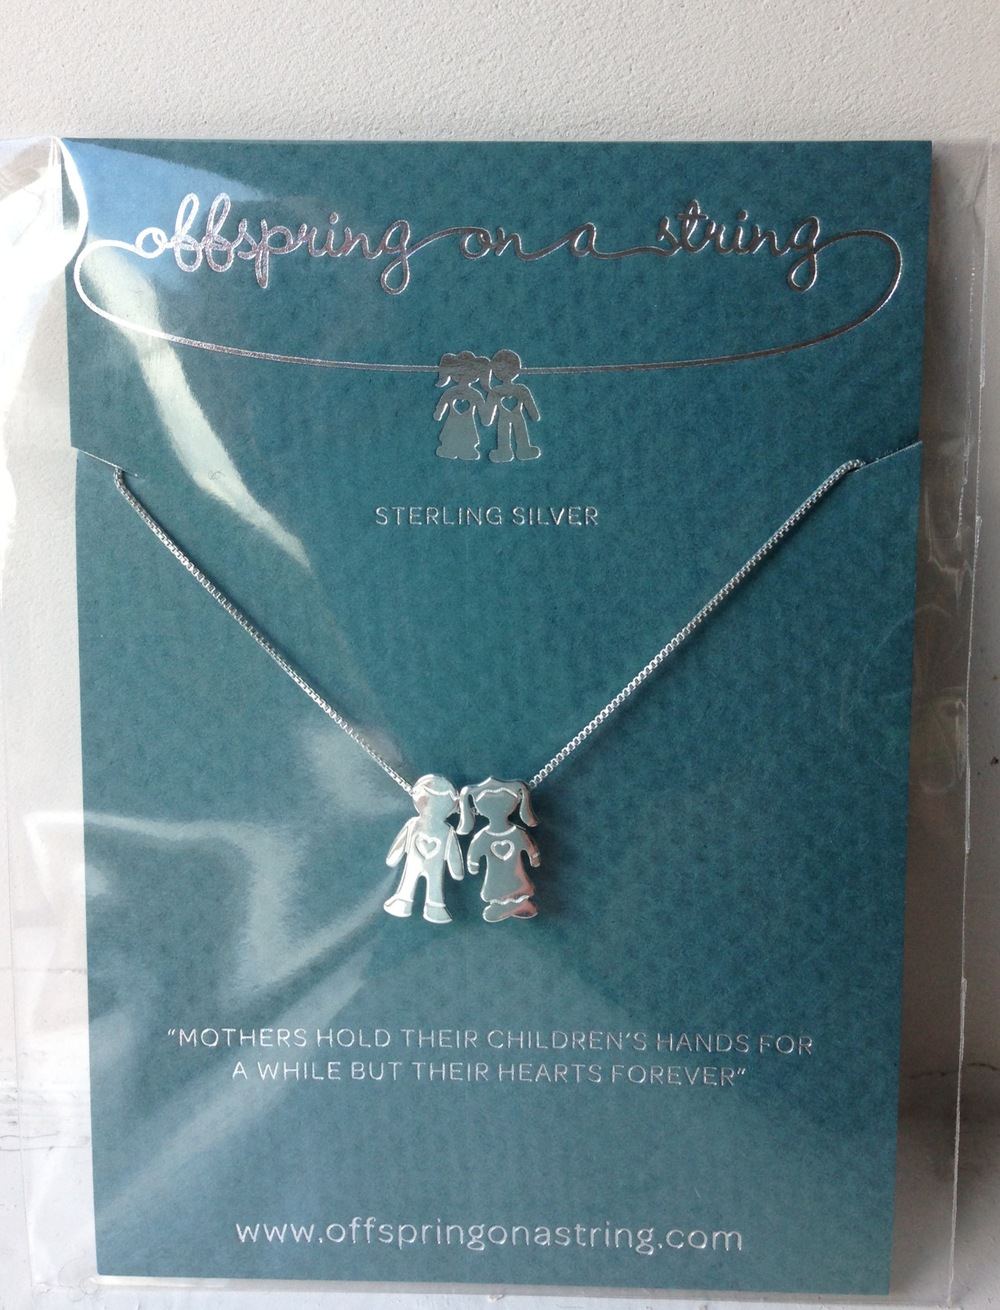 offspring on a string necklace hampstead mums